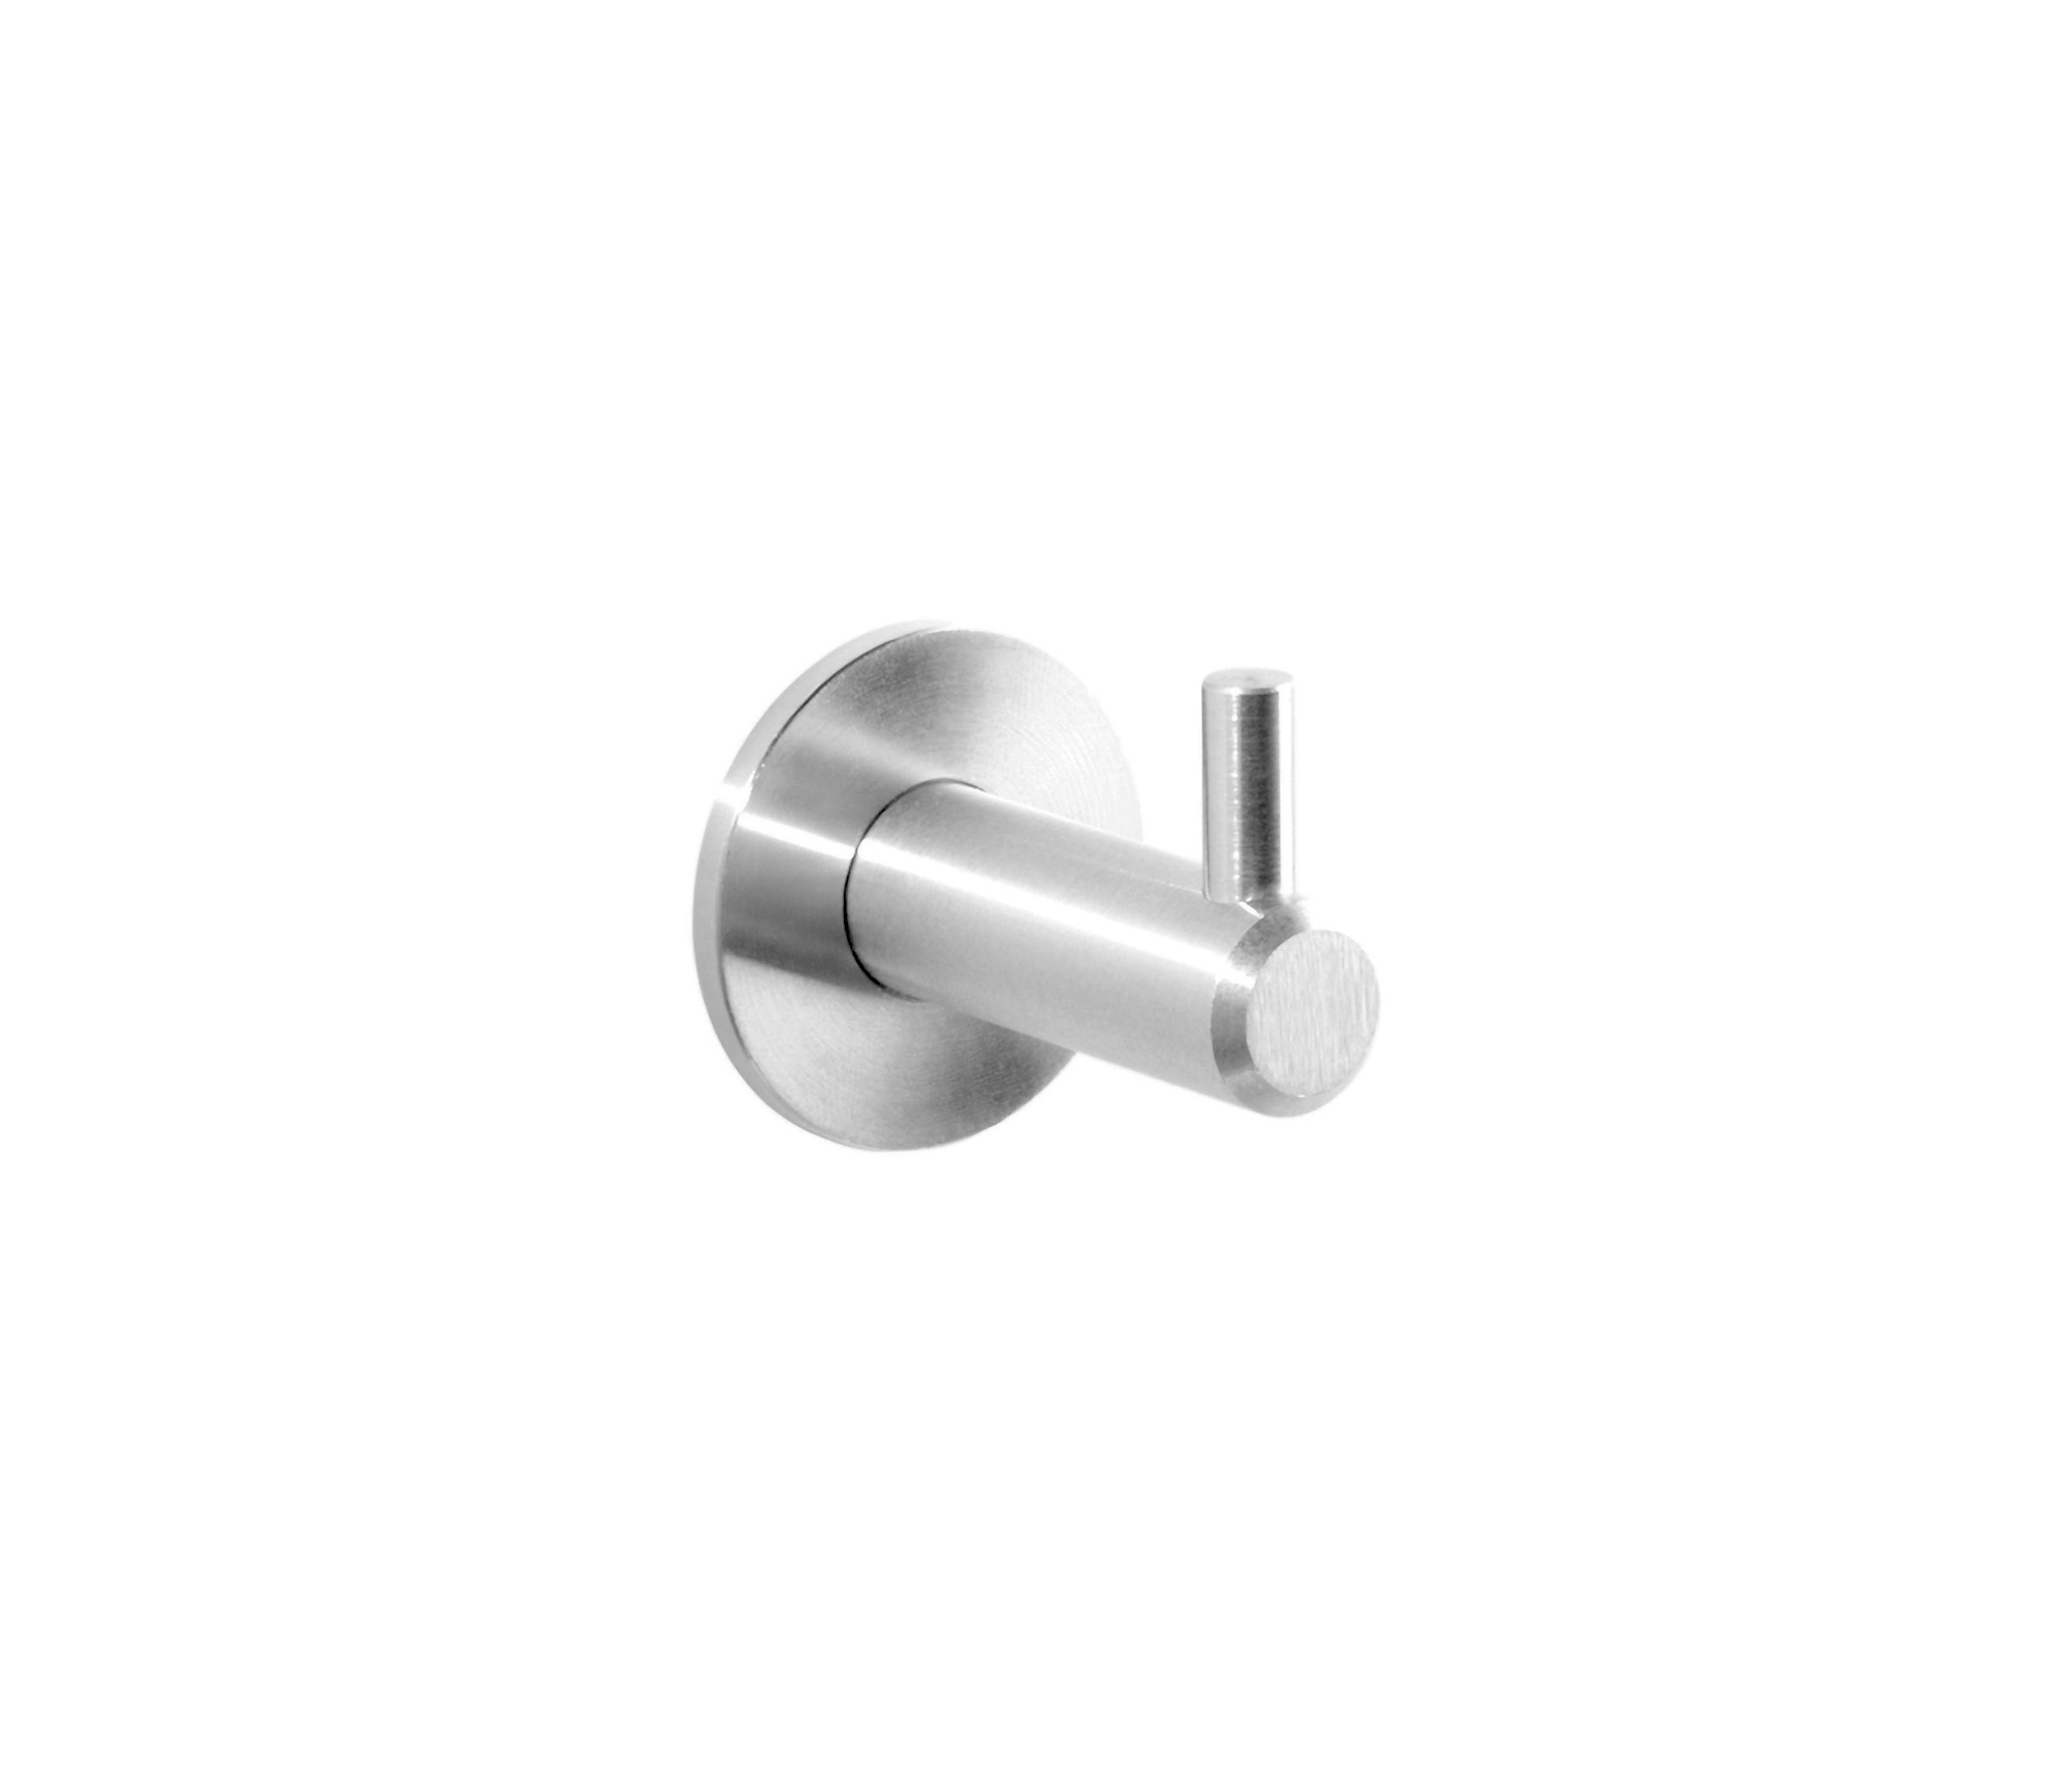 ACCESSORIES | PERCHA 1 - Towel hooks from Didheya | Architonic